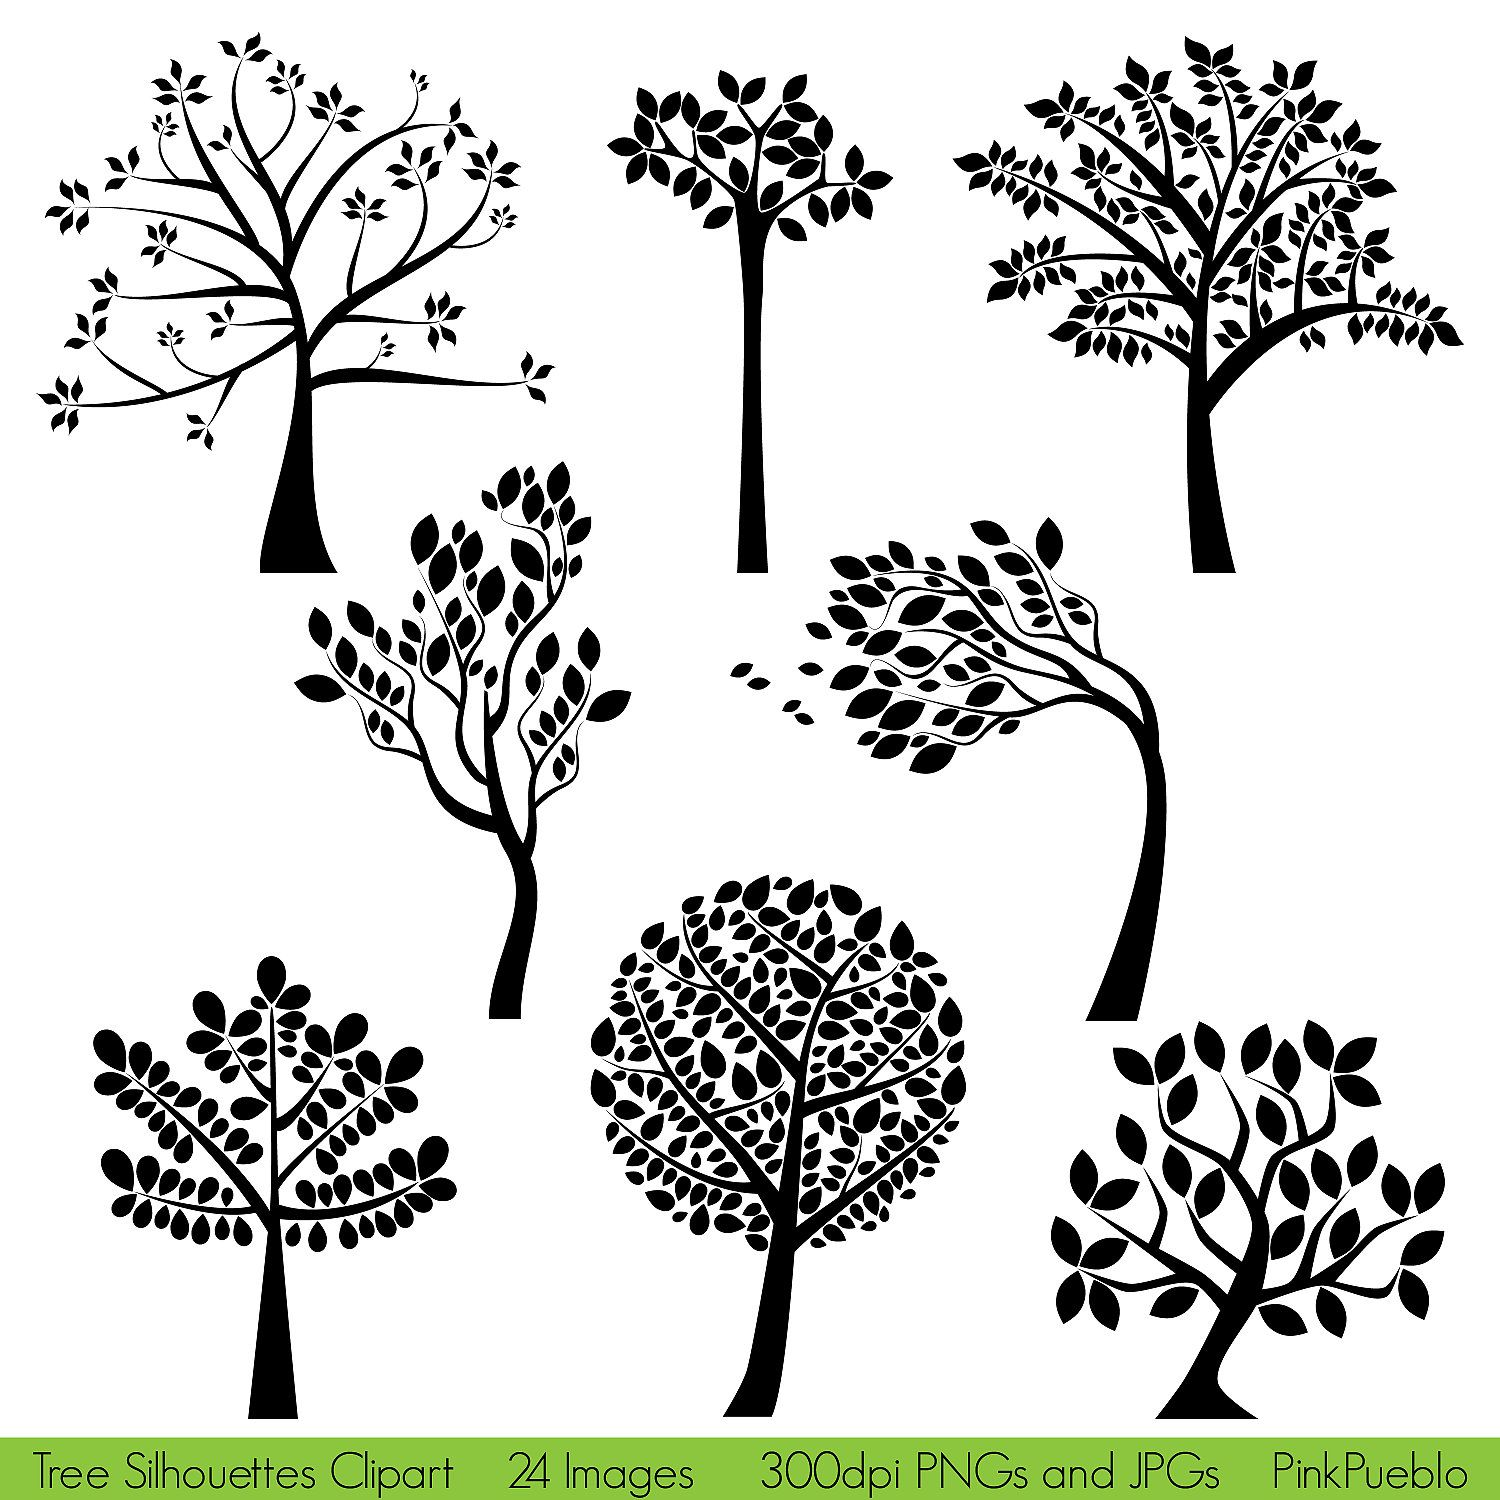 Tree Silhouettes Clipart Clip Art, Family Tree Clipart Clip Art ...